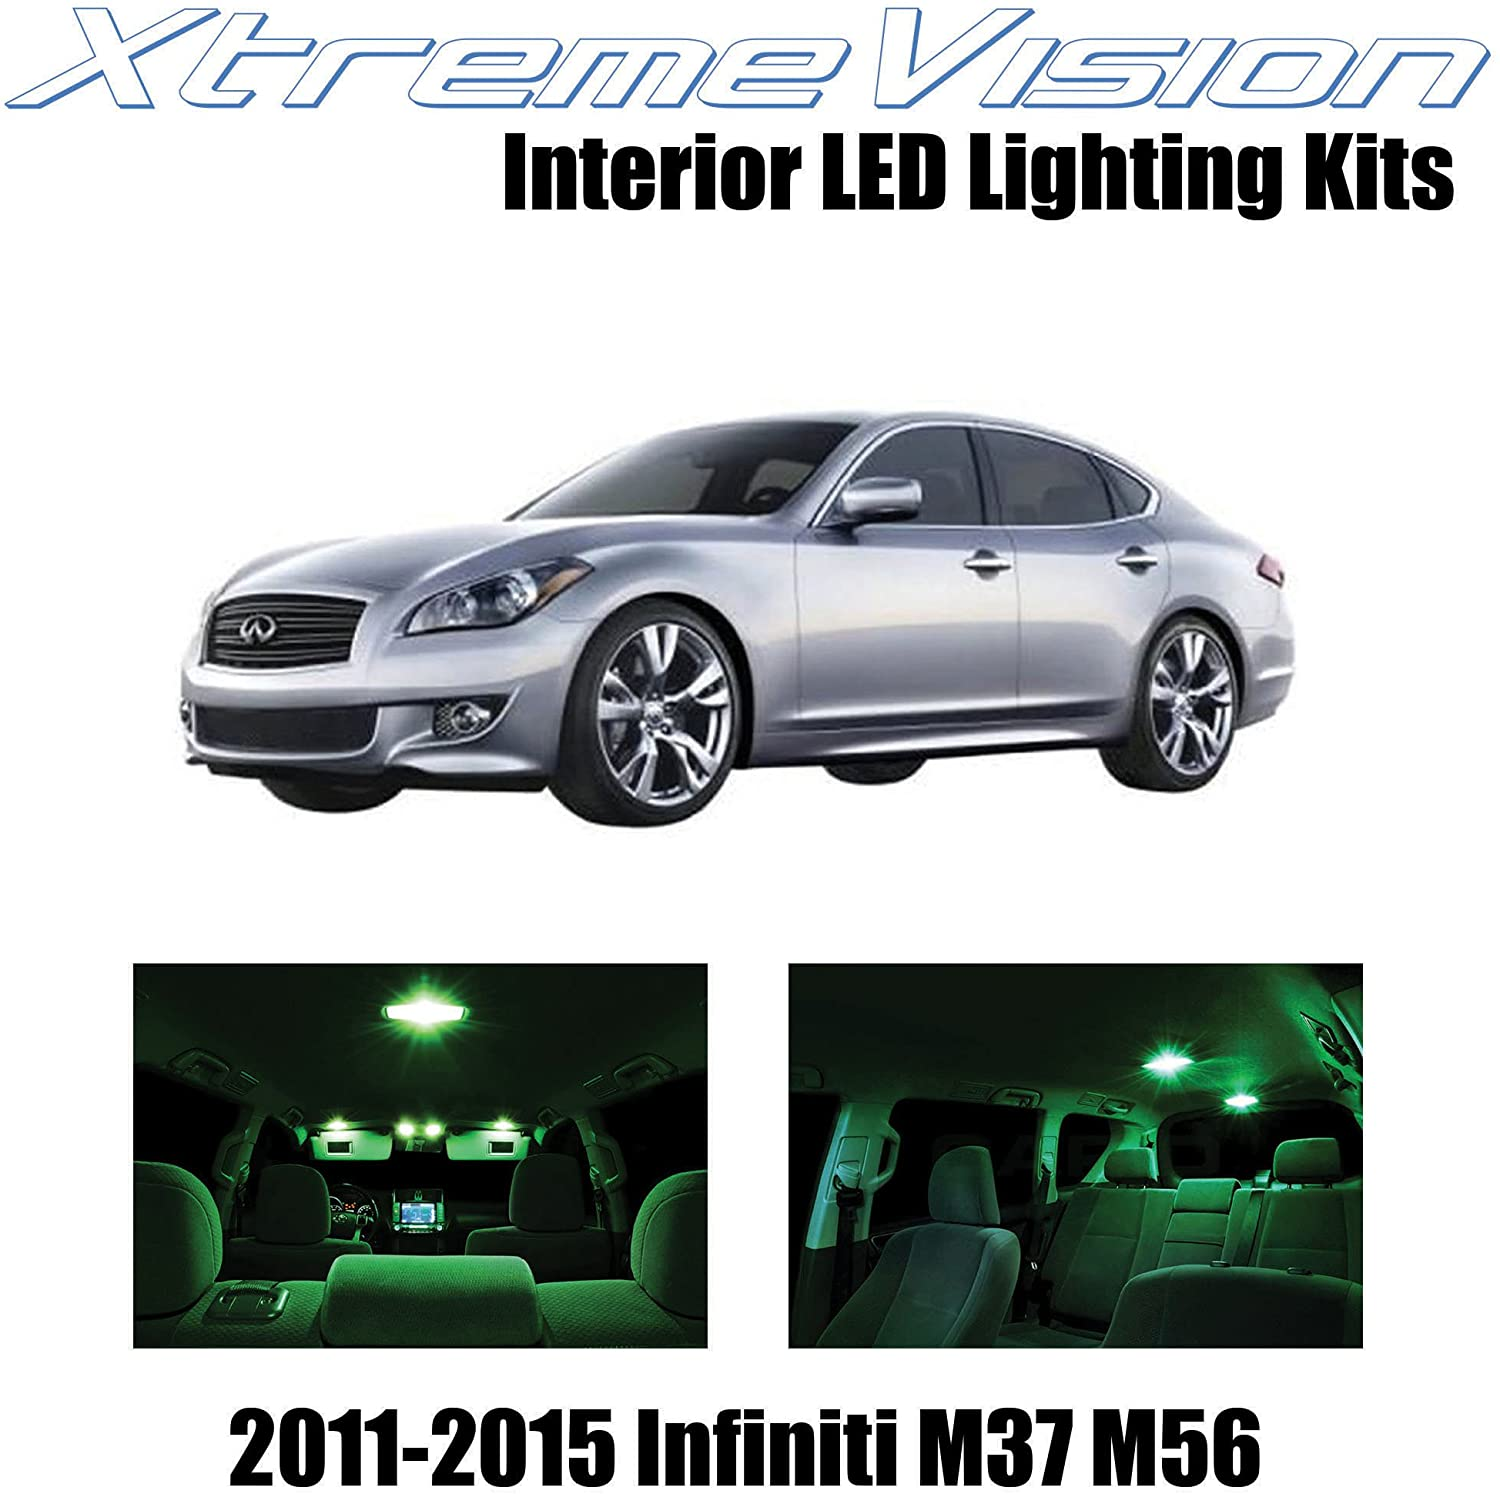 XtremeVision Interior LED for Infiniti M37 M56 2011-2015 (10 Pieces) Green Interior LED Kit + Installation Tool